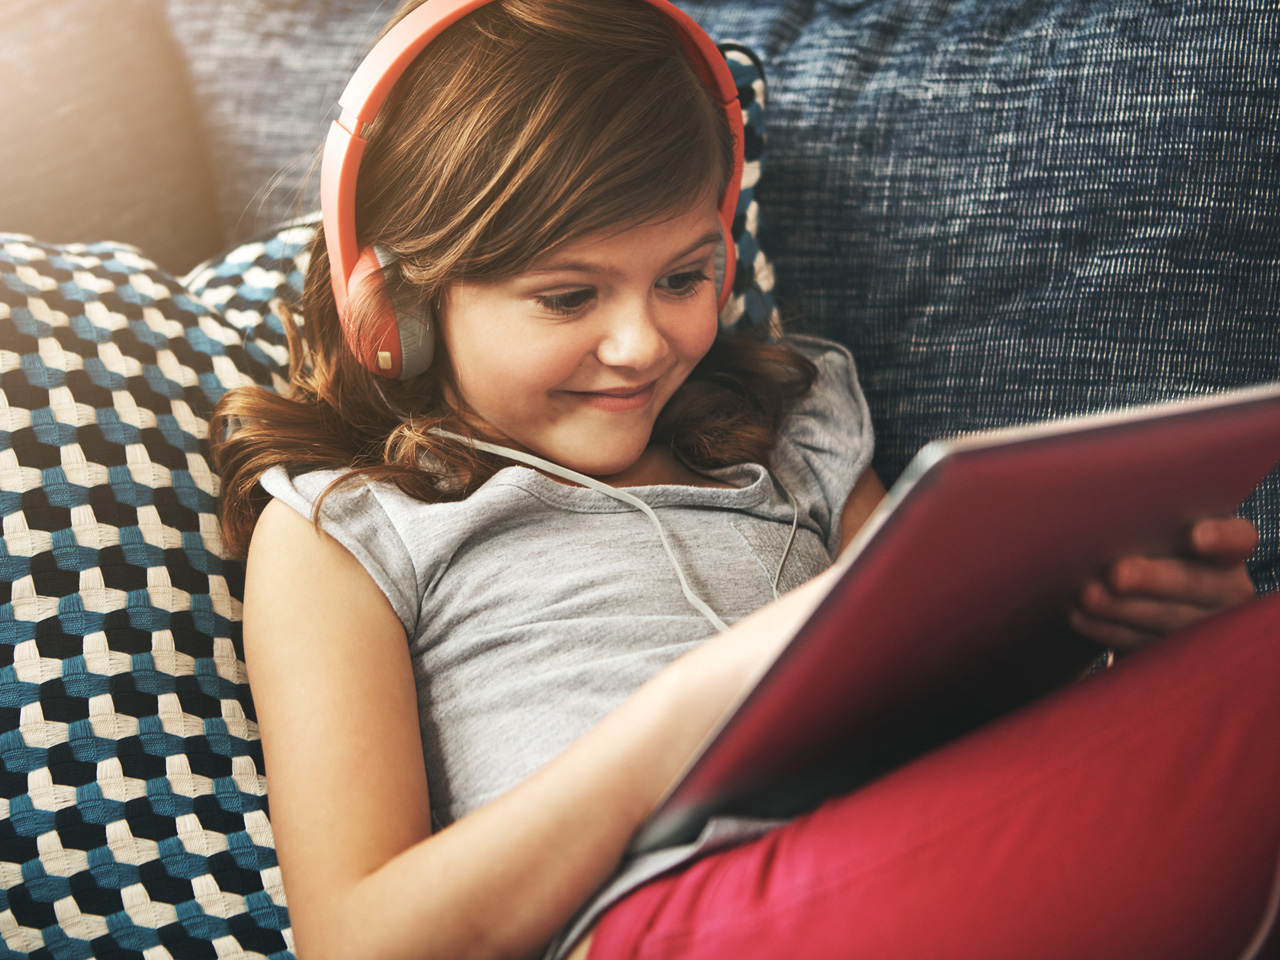 Little girl on the couch with a tablet and headphones, looking engaged